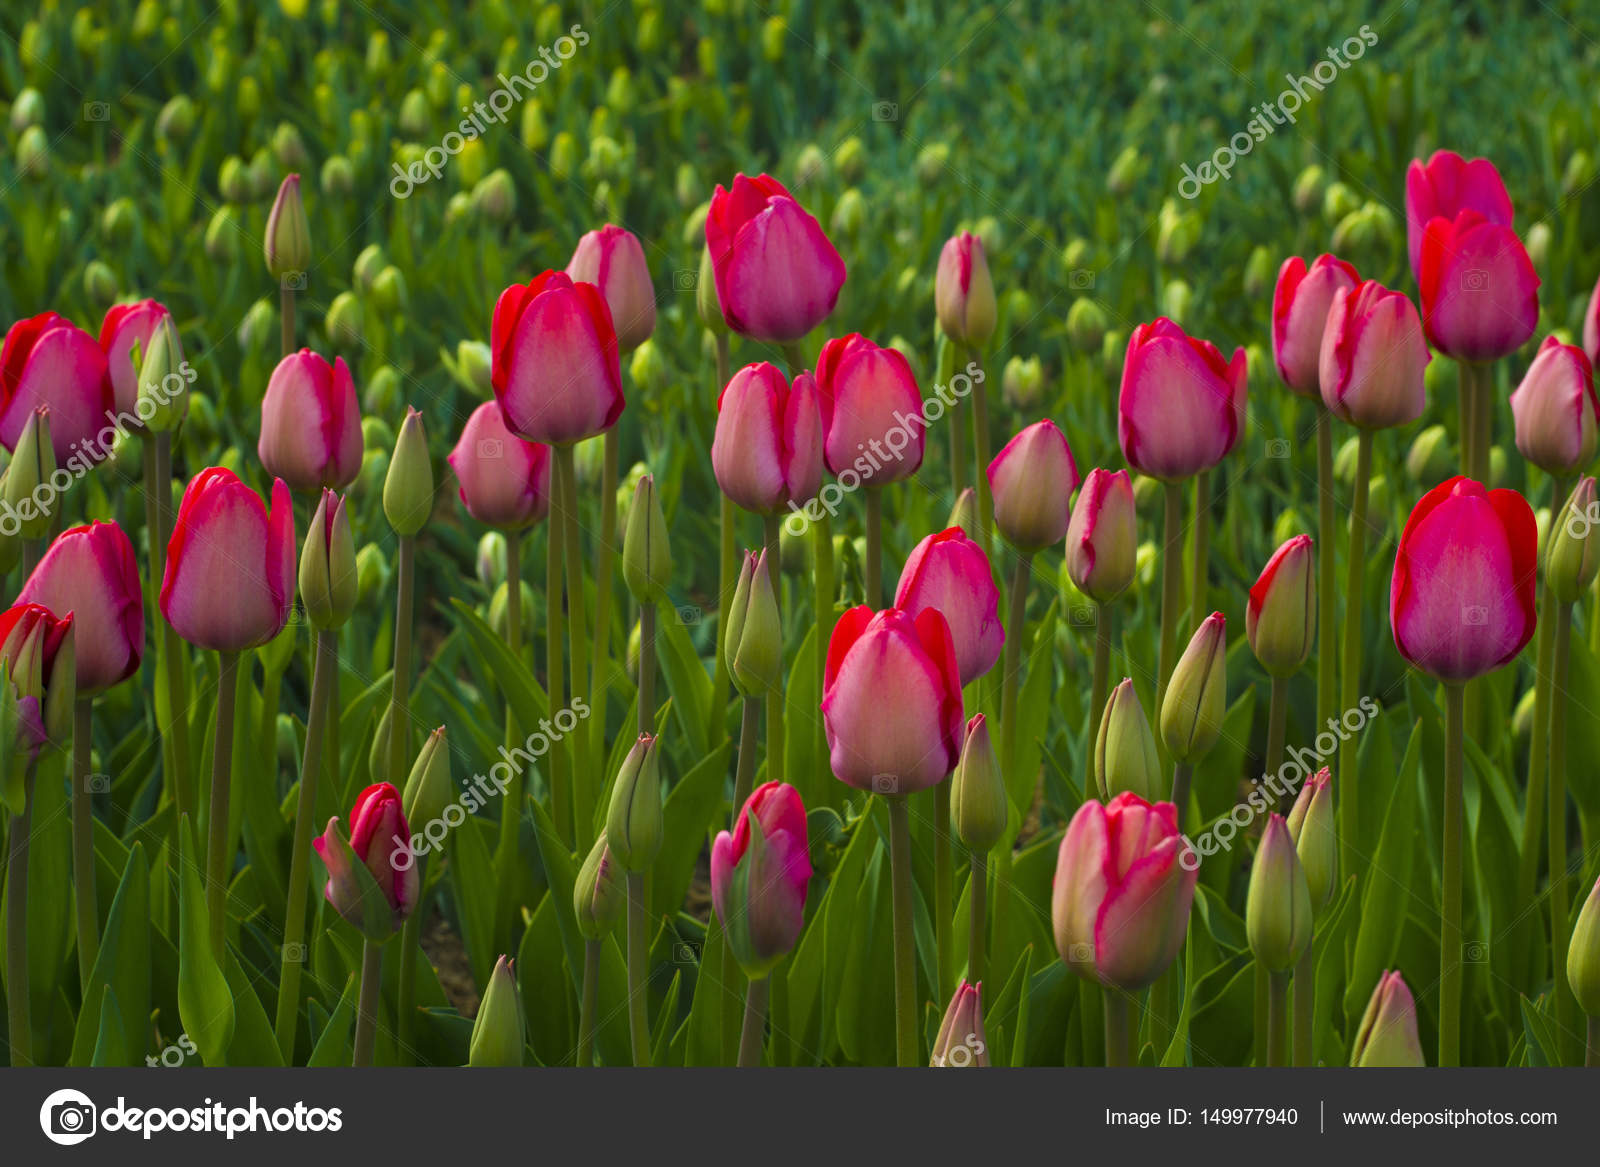 Field Of Tulips Tulips Flowers Red Tulips Bed Of Pink Tulips